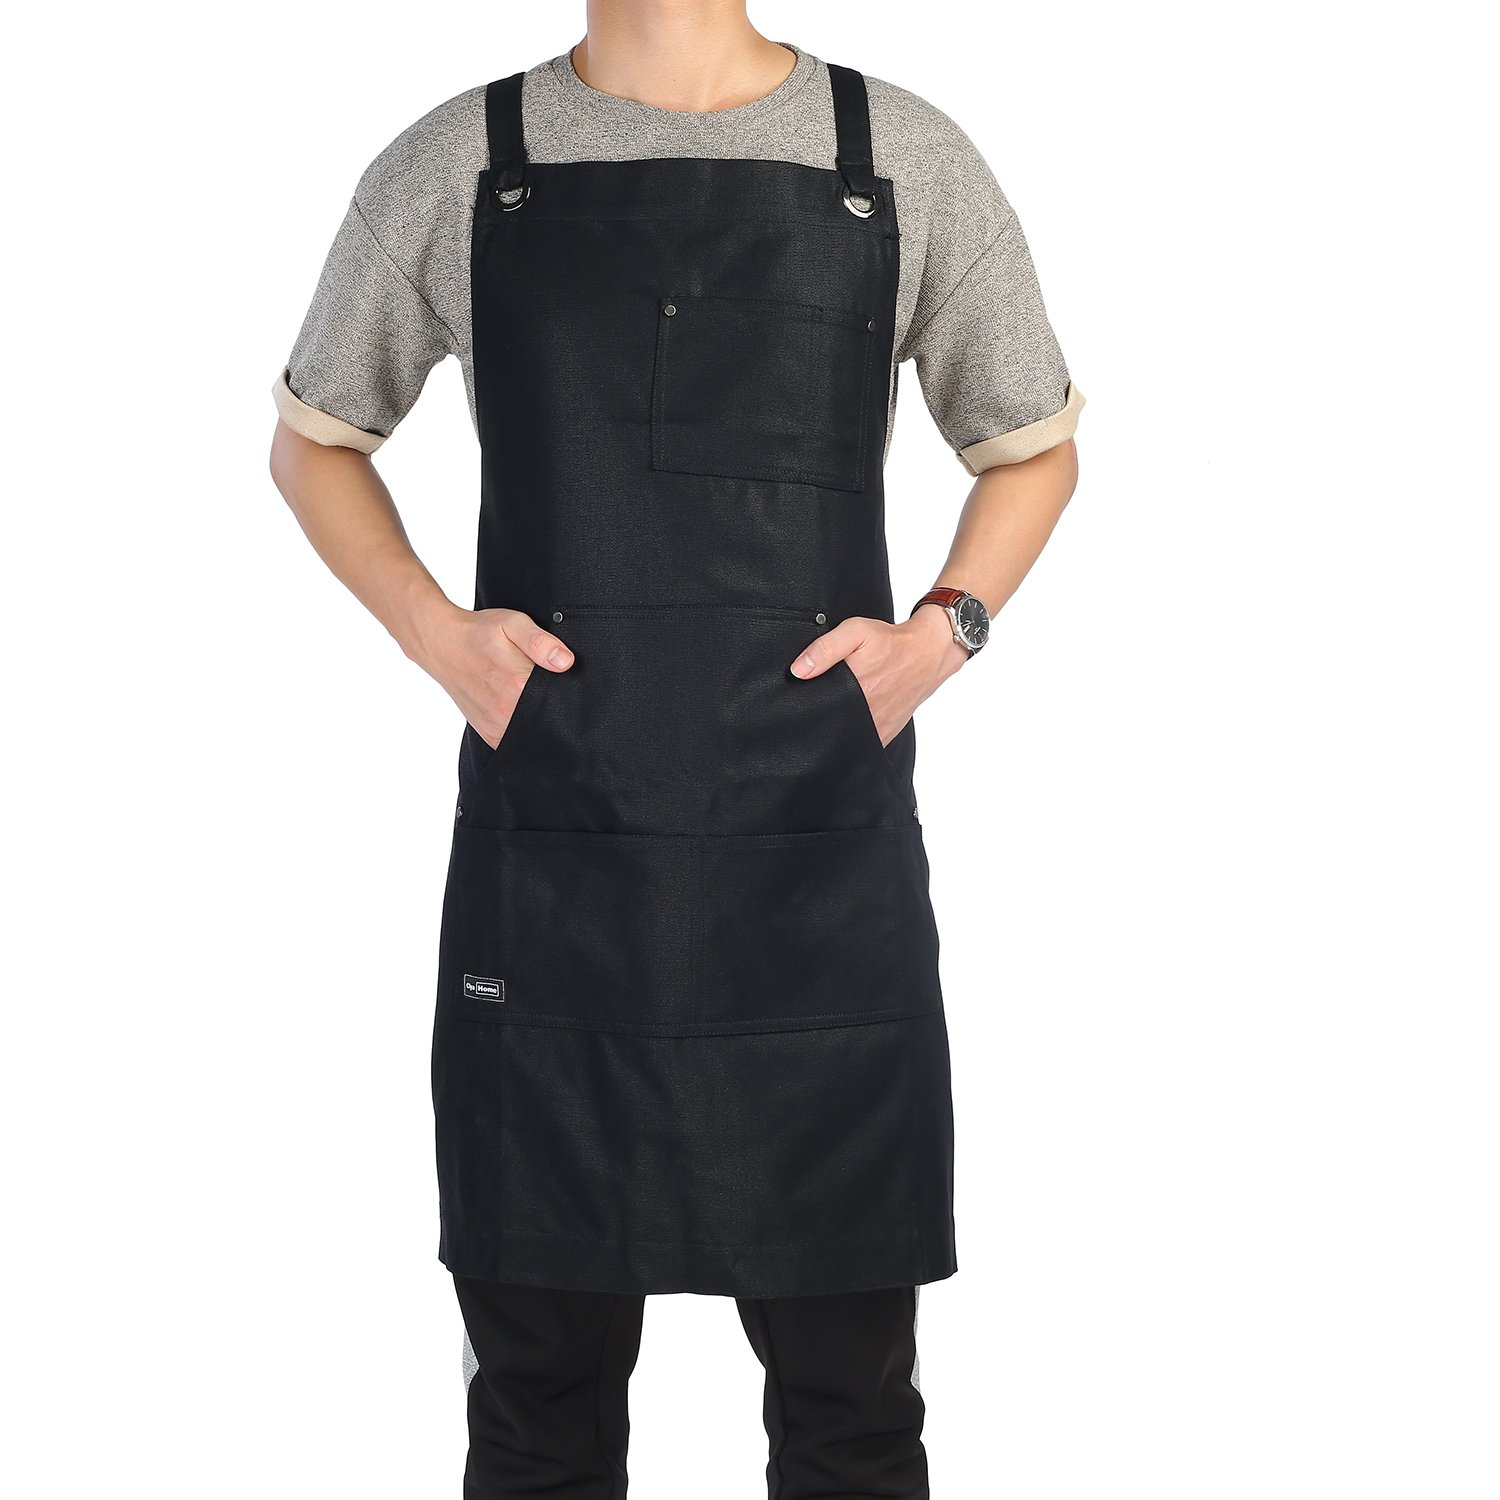 Work Apron, Clya Home Heavy Duty Waxed Canvas Apron Shop Apron with Tool Pockets, Adjustable Cross-Back Straps Up To XXL for Men Women (Black)